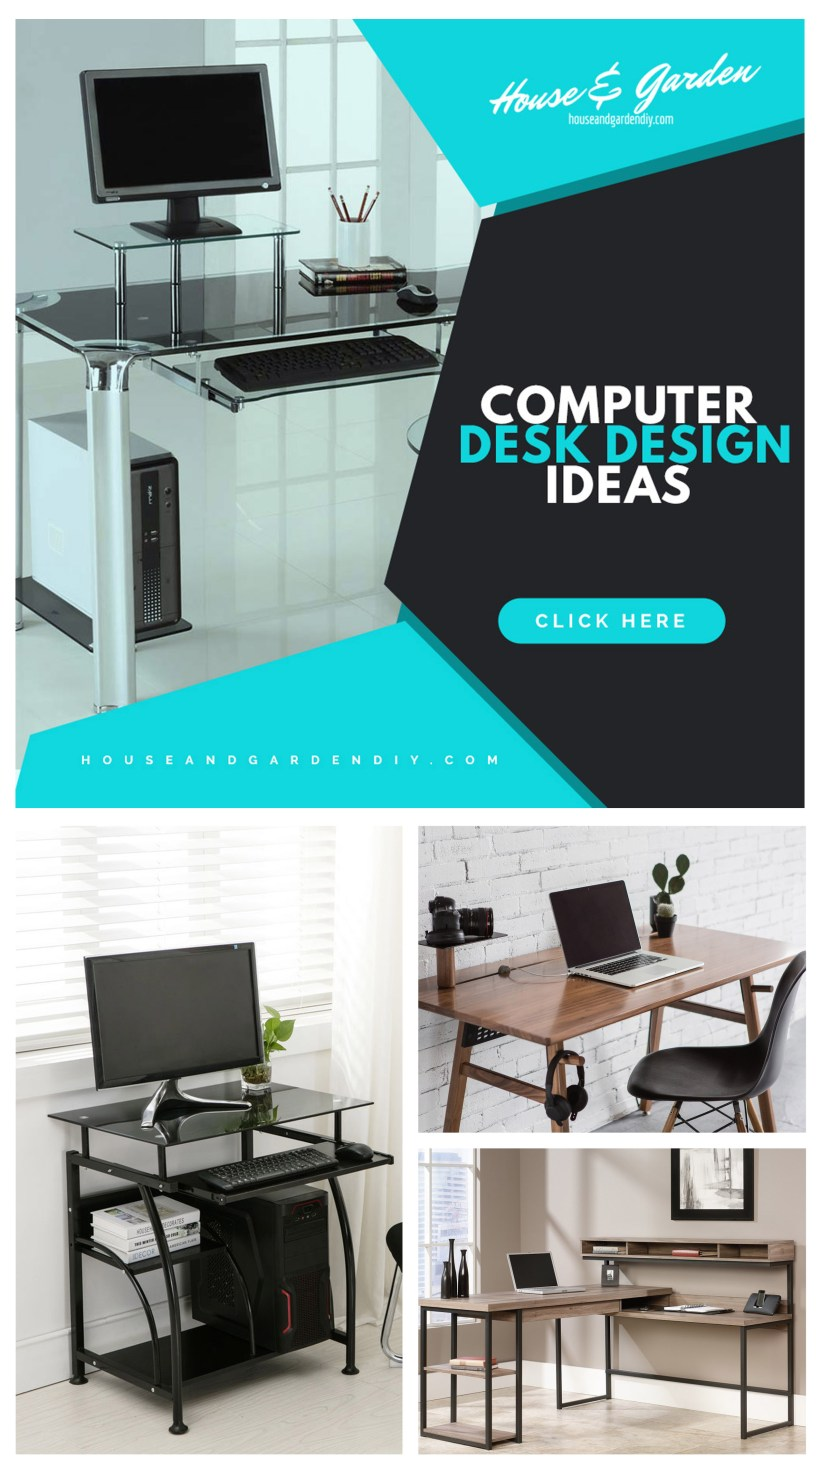 Computer Desk Design Ideas